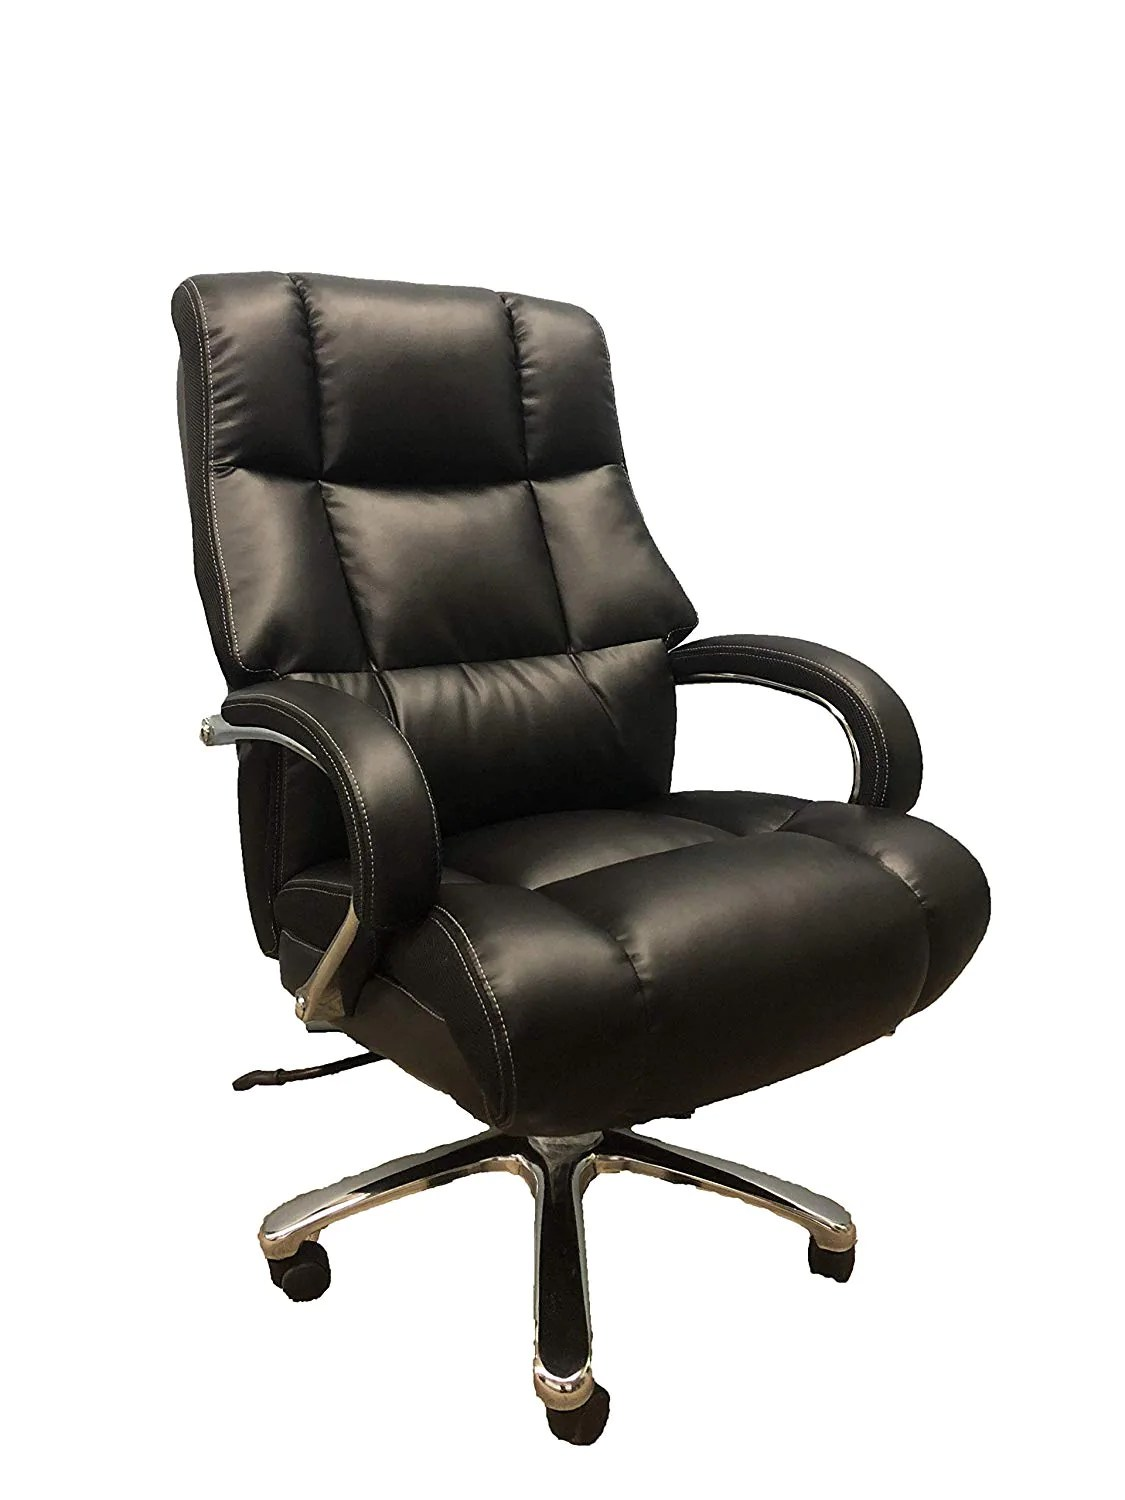 Big And Tall Black Comfort Executive Office Chair With Extra Thick Pad Us Office Elements